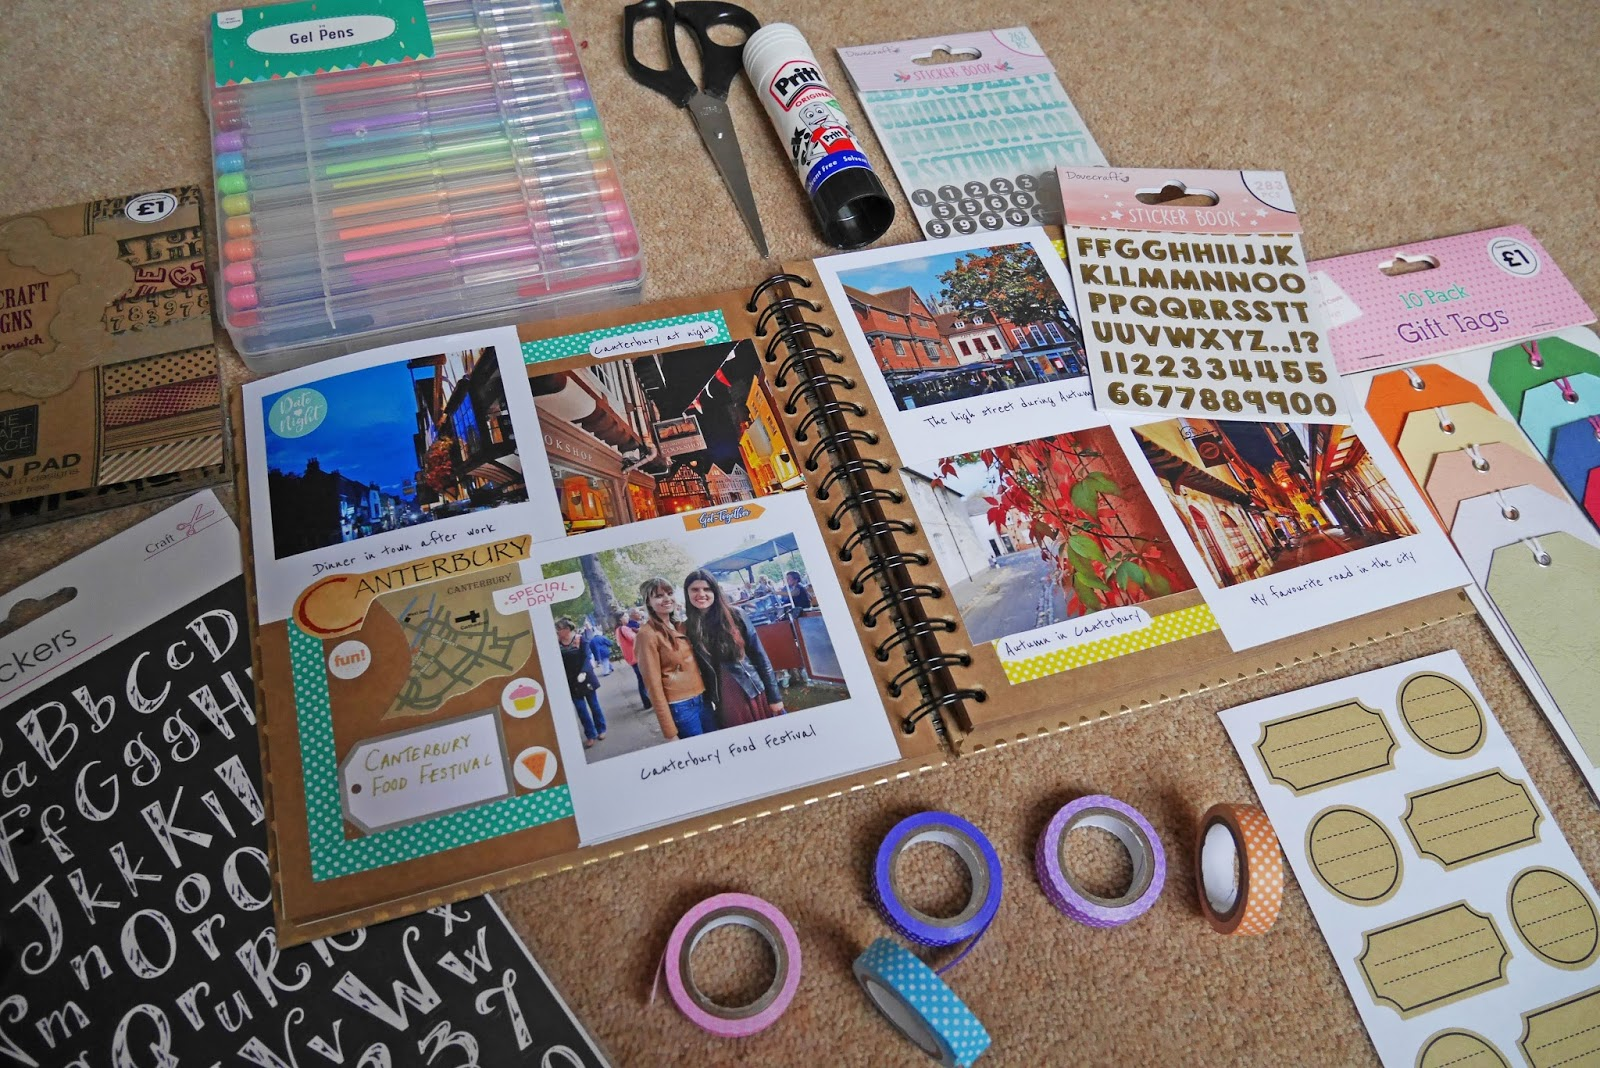 Scrapbooking starter kit for beginners - photos, gel pens, sticker books and more